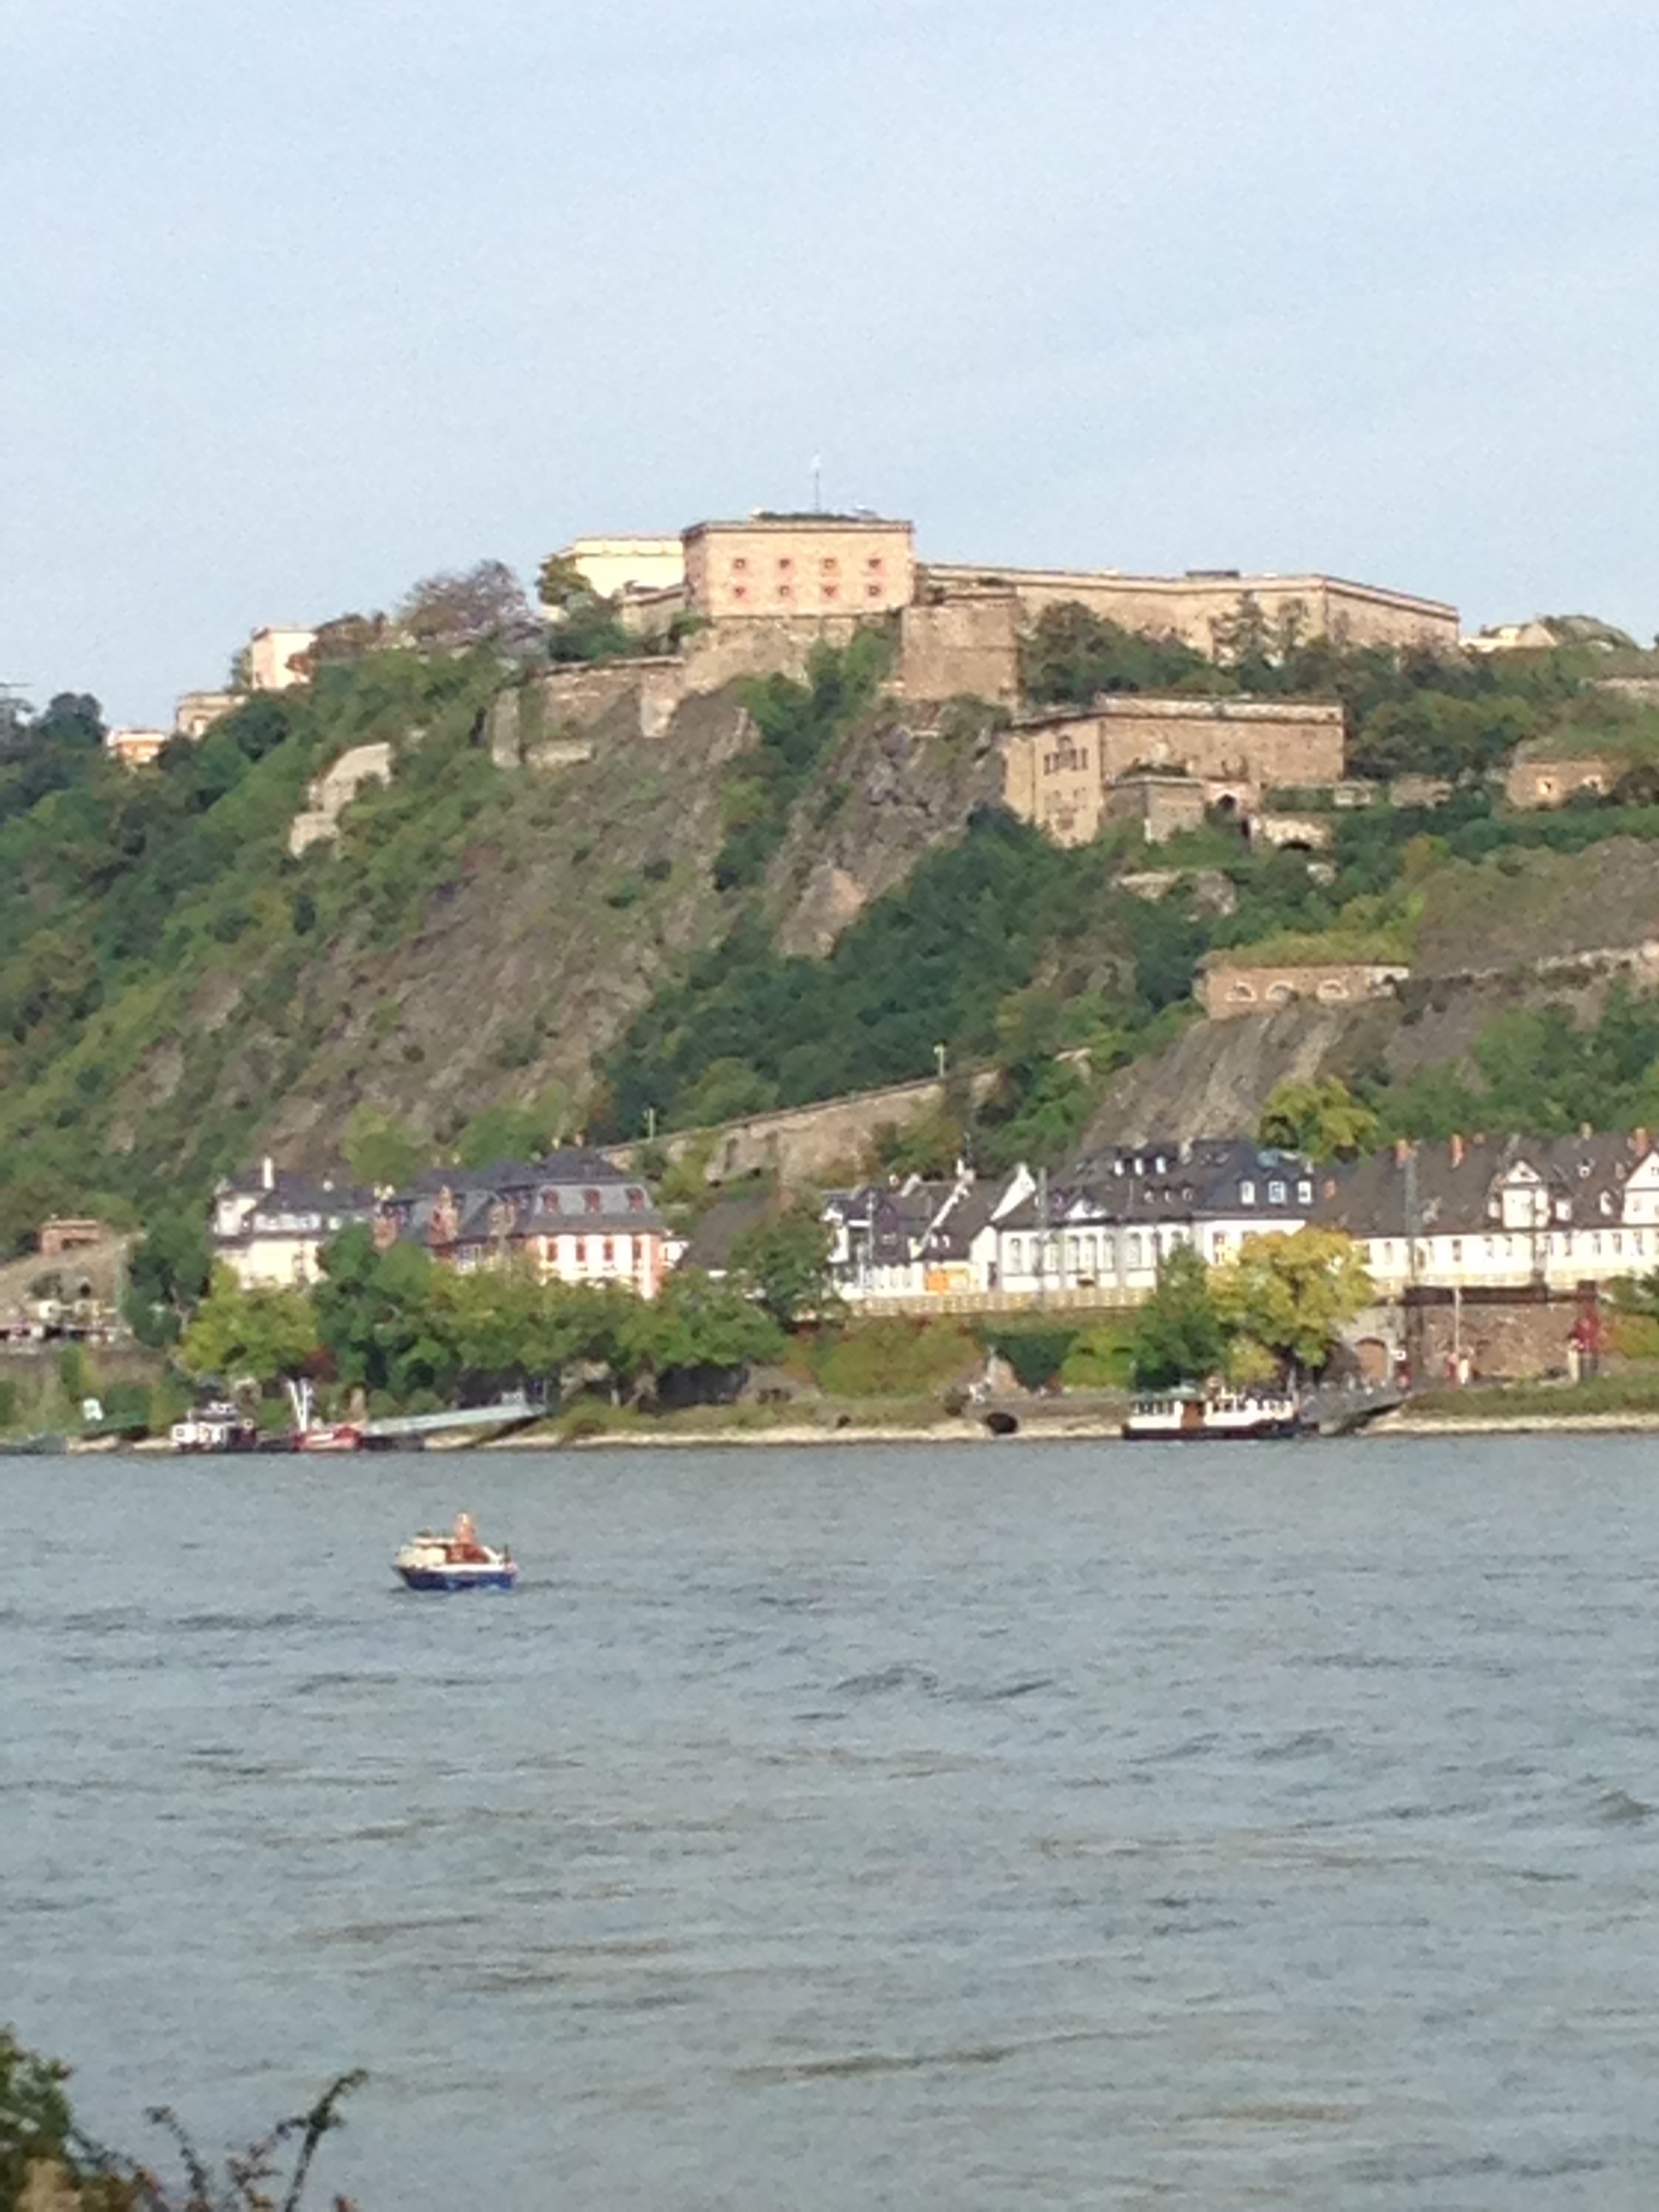 Across from Koblenz